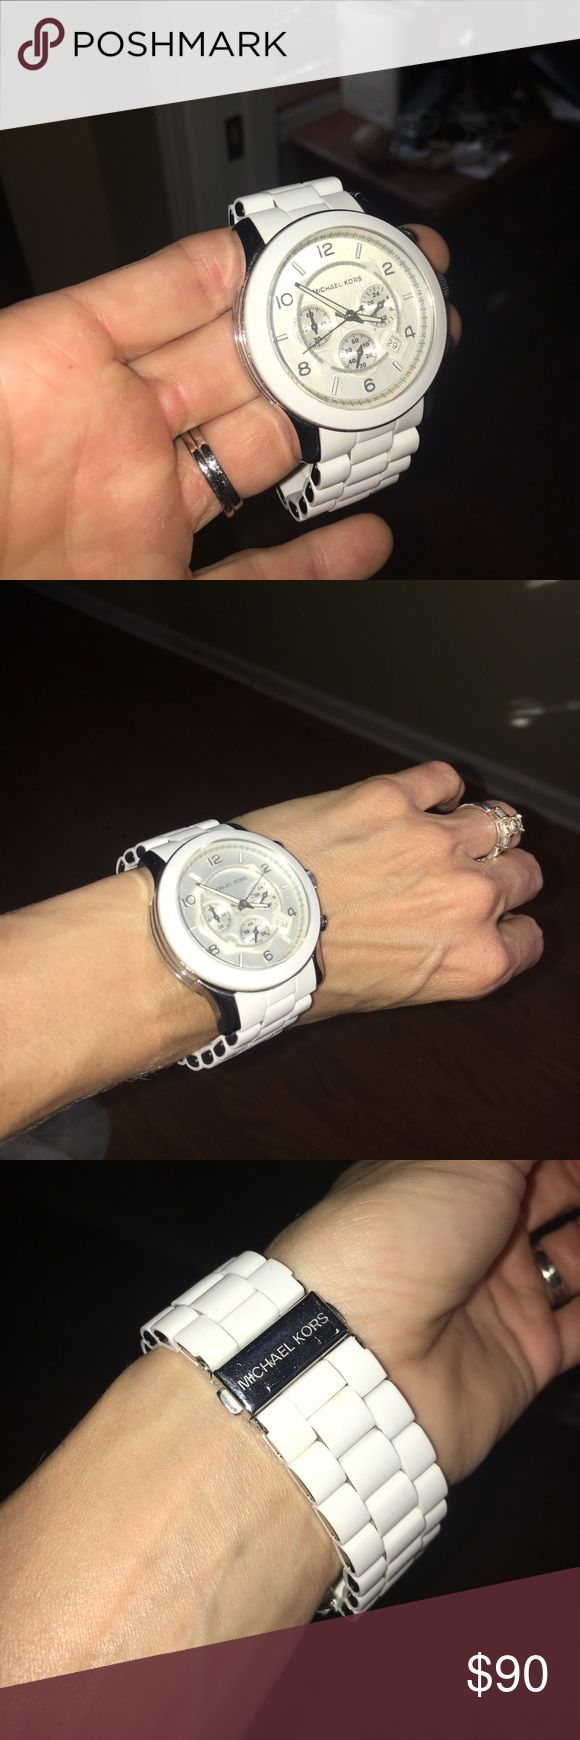 Michael Kors white watch PRICE FIRM Large face Michael Kors white watch MK 8108 like new NO SCRATCHES AT ALL! Just put a new battery in it. Keeps time great😁 Could be worn by a man or woman. Michael Kors Accessories Watches